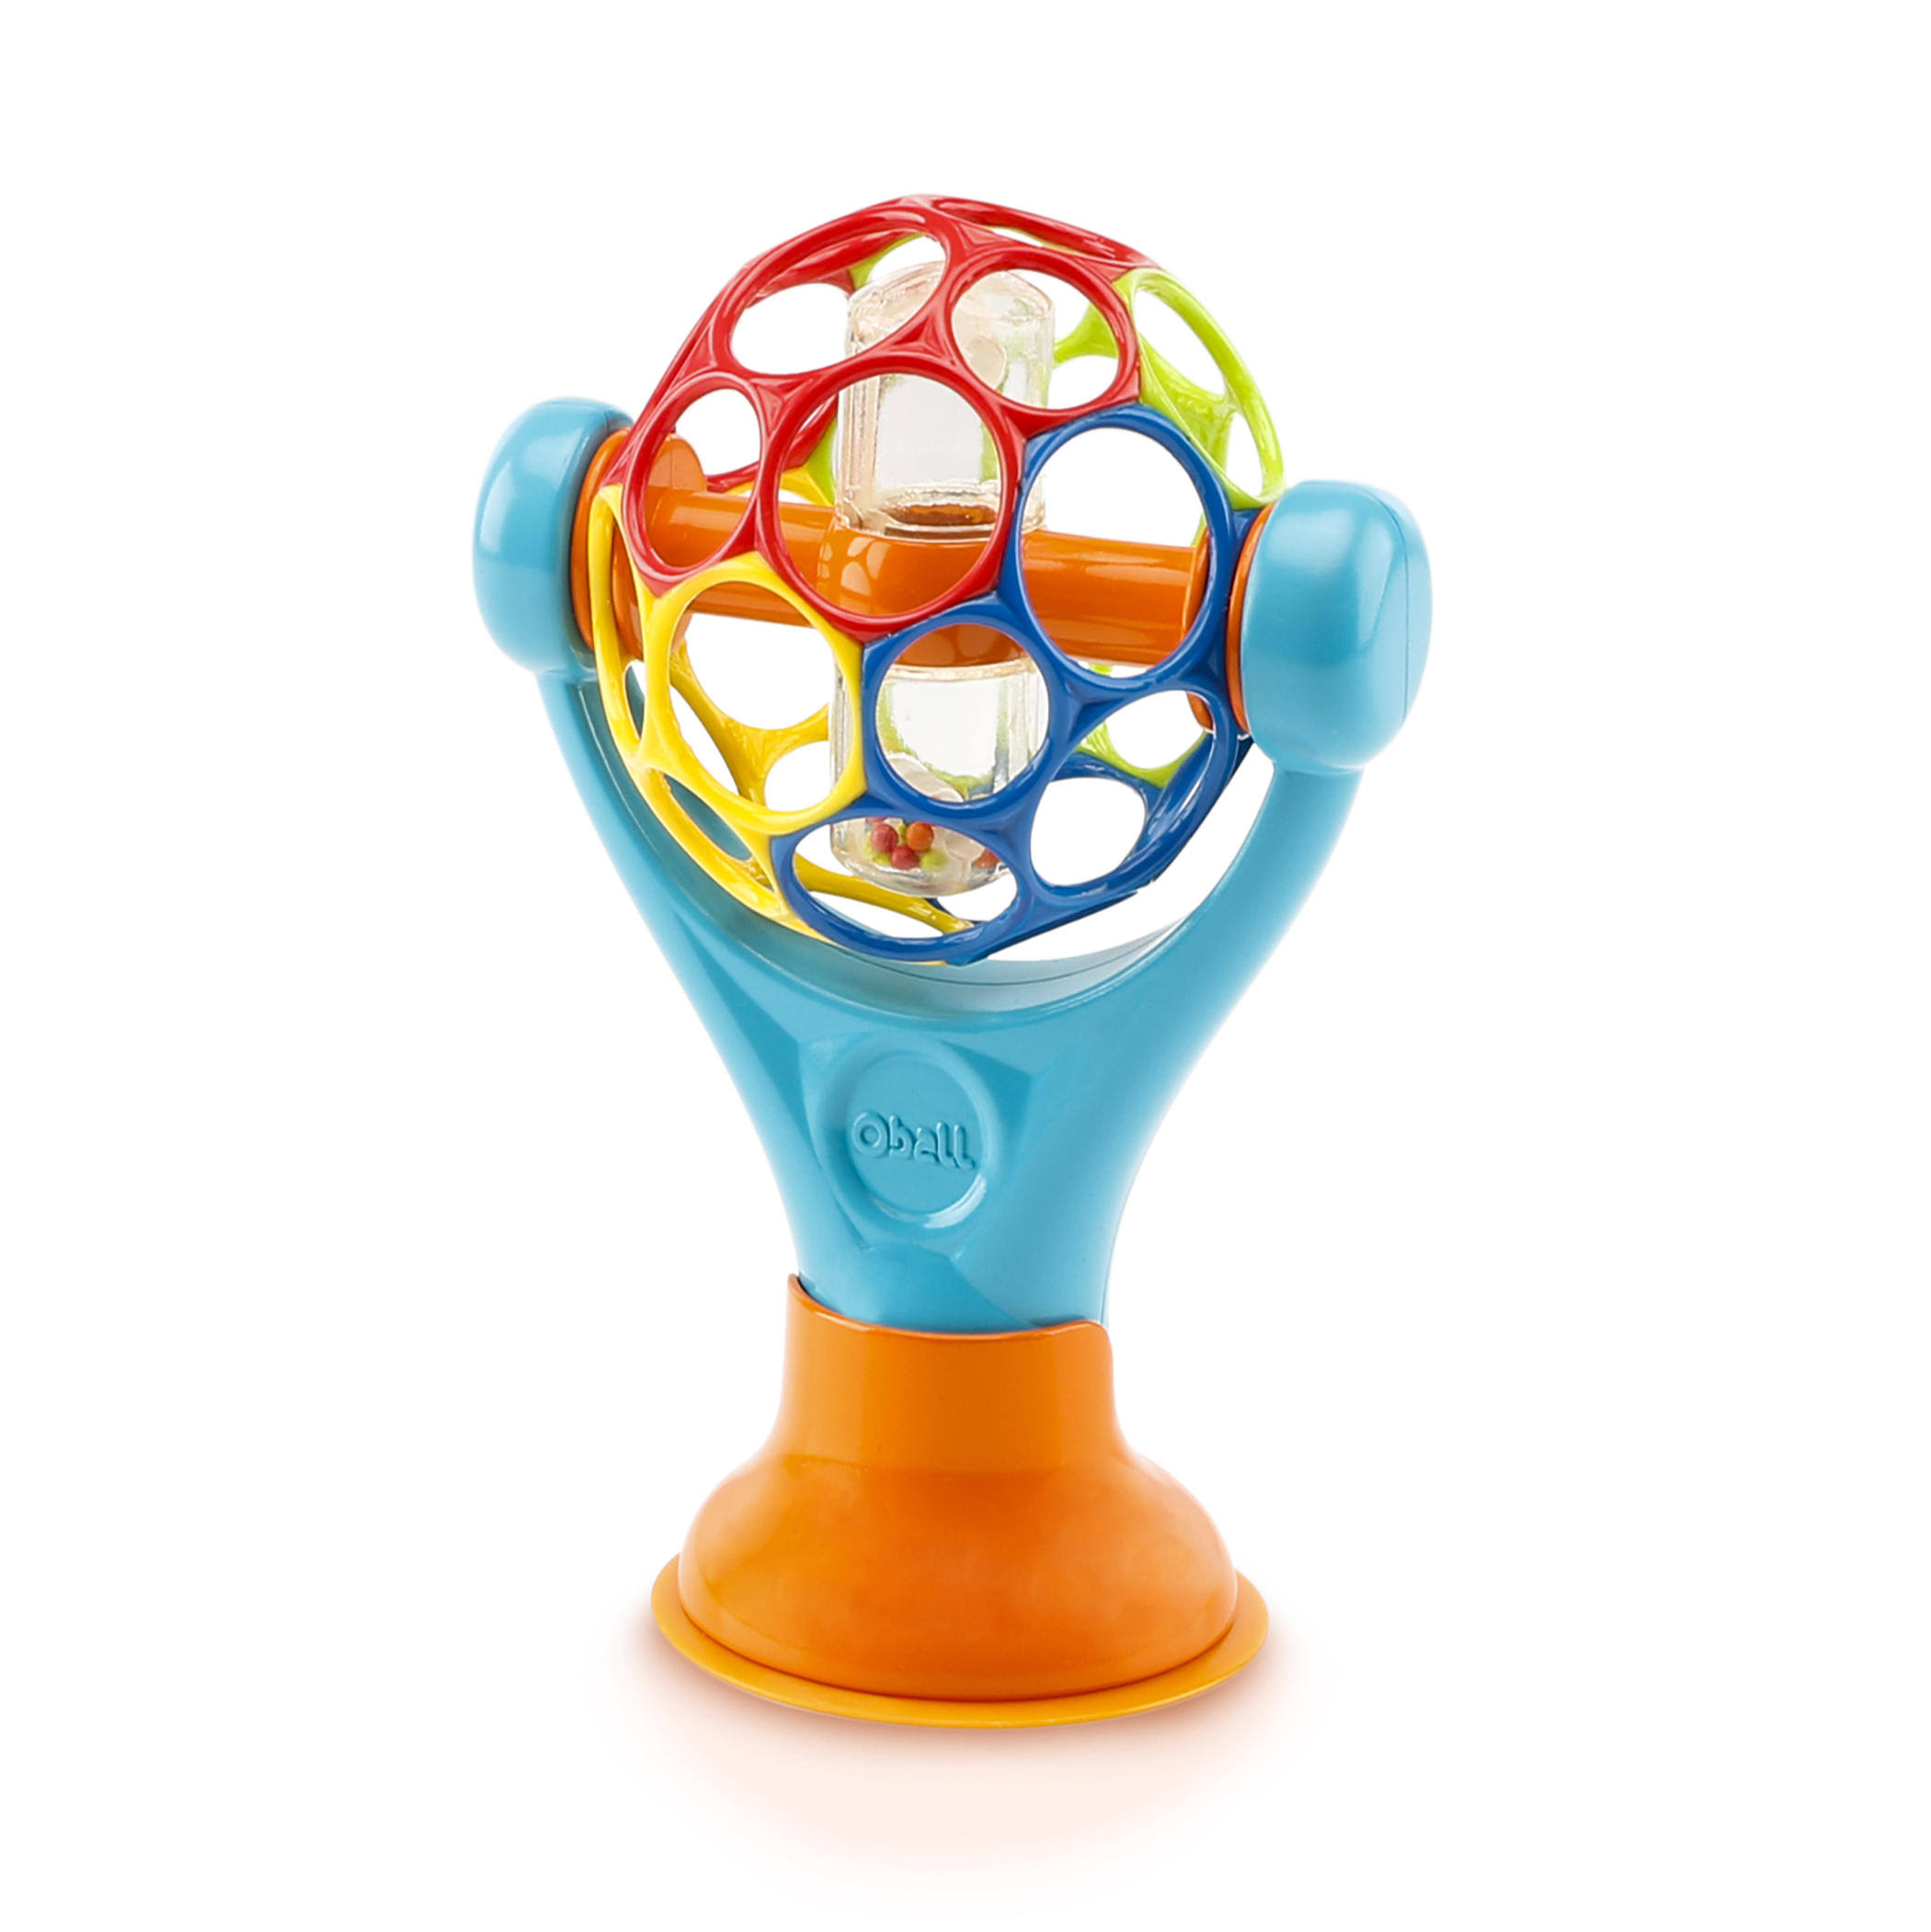 O Ball Grip & Play Suction Toy